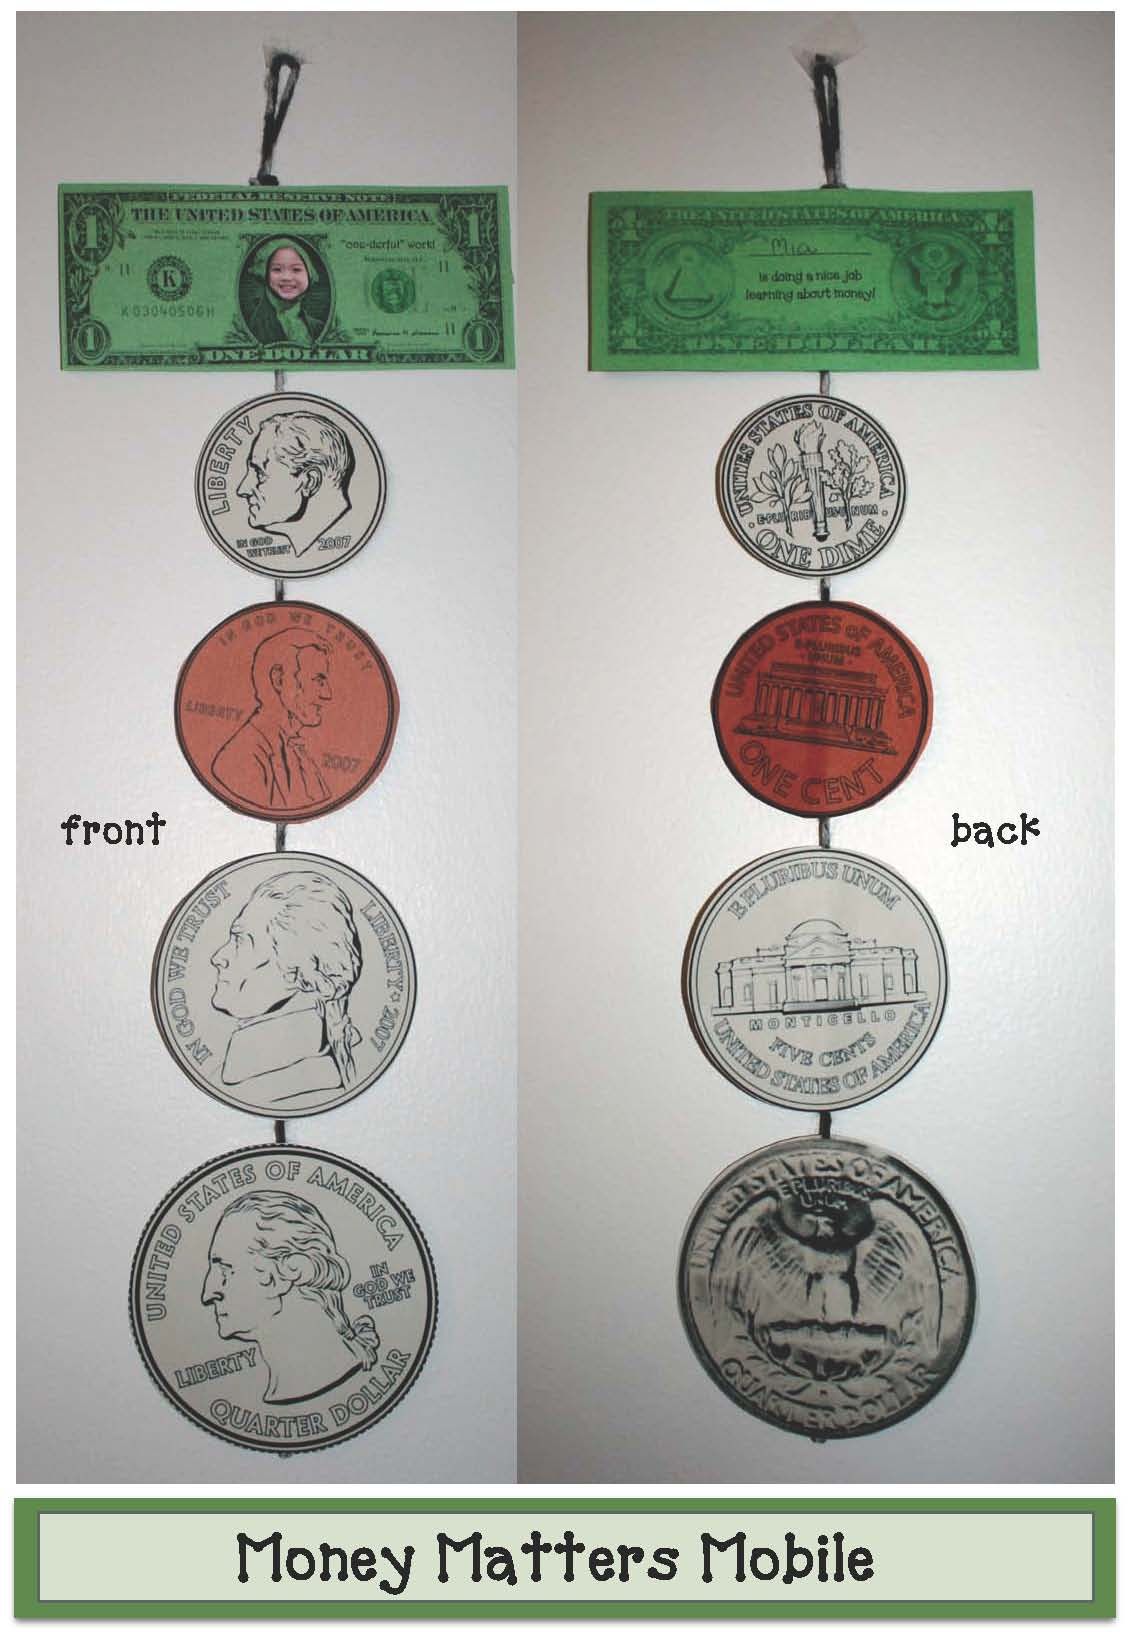 10 frames templates, 10 frames activities, 10 frames with coins on them, 10 frame cards, ten frames templates, ten frames activities, coin activities, coin lessons, coin centers, coin worksheets, coin crafts, coin games, identifying coins, coin posters, coin songs, coin poems, file folder facts, file folder activities, file folder reporsts, dice games, math games,